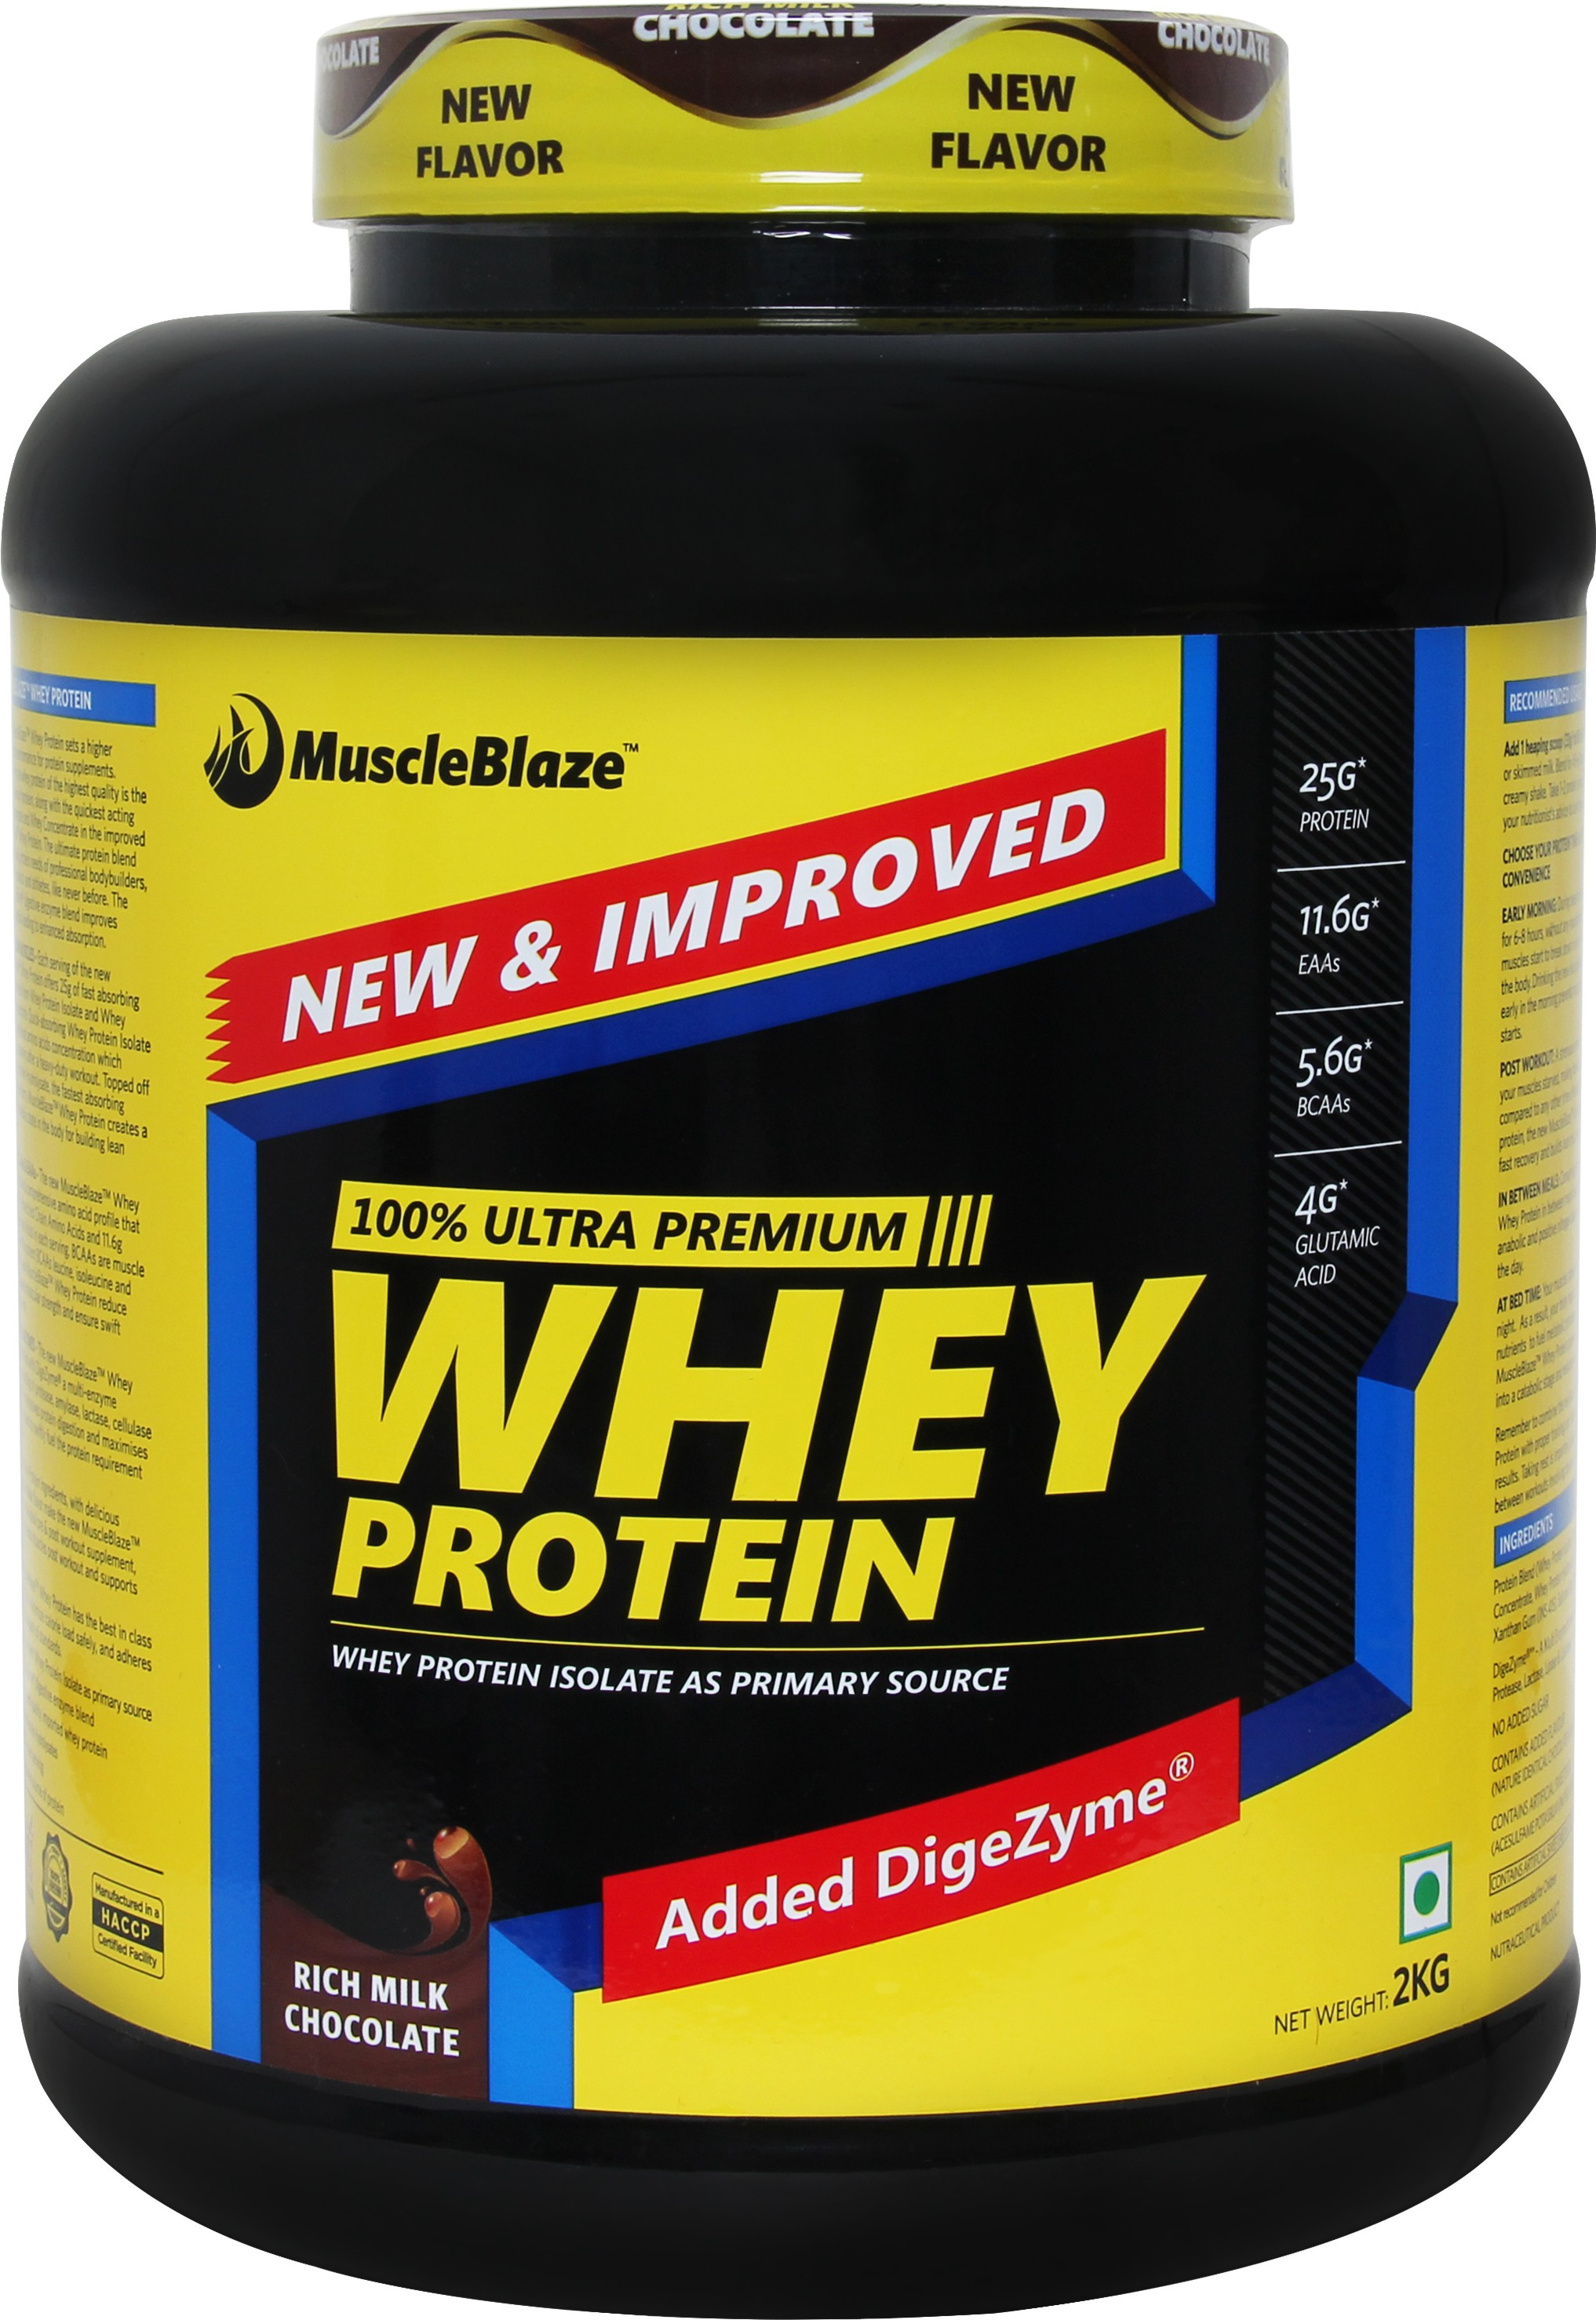 Deals | MuscleBlaze Protein,Vitamin Supplements